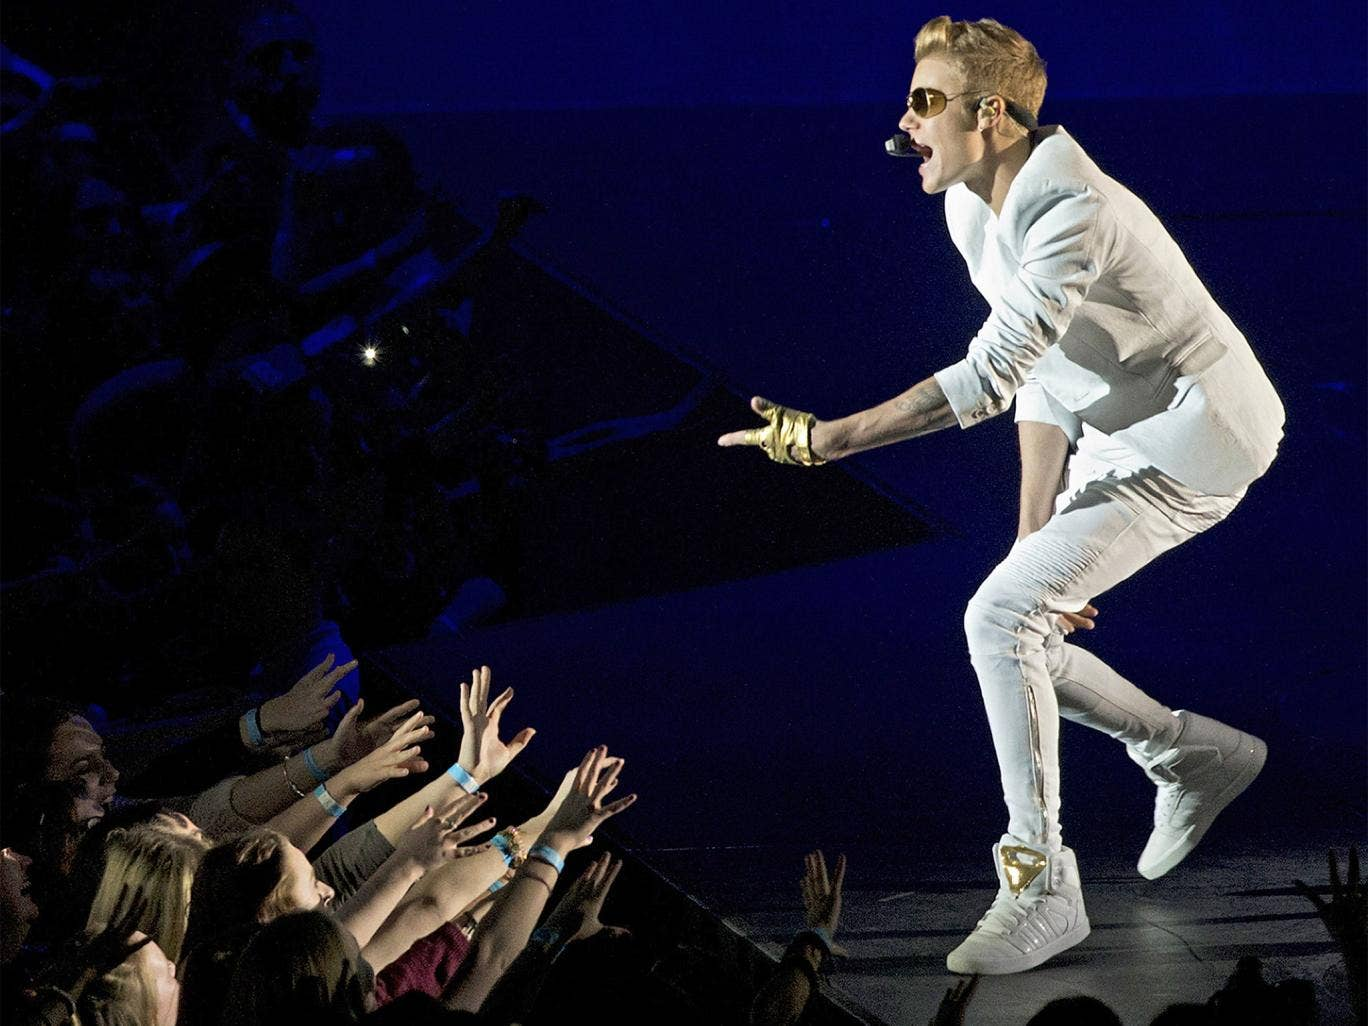 Bieber said nothing on-stage about Monday's fiasco